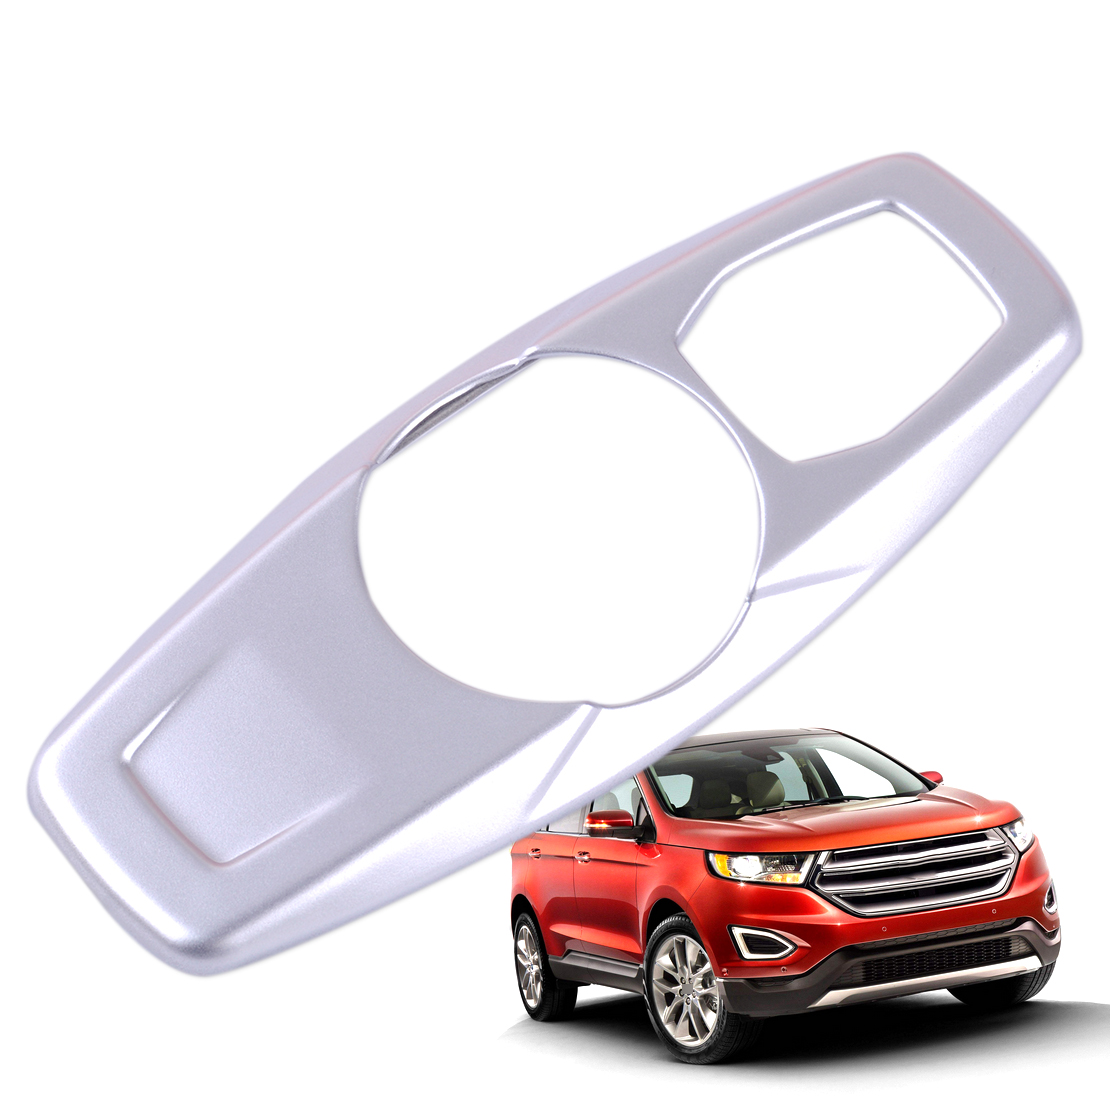 2*ABS Chrome Rear Tail Light Lamp Cover Decorative Trim For Ford Edge 2011-2013